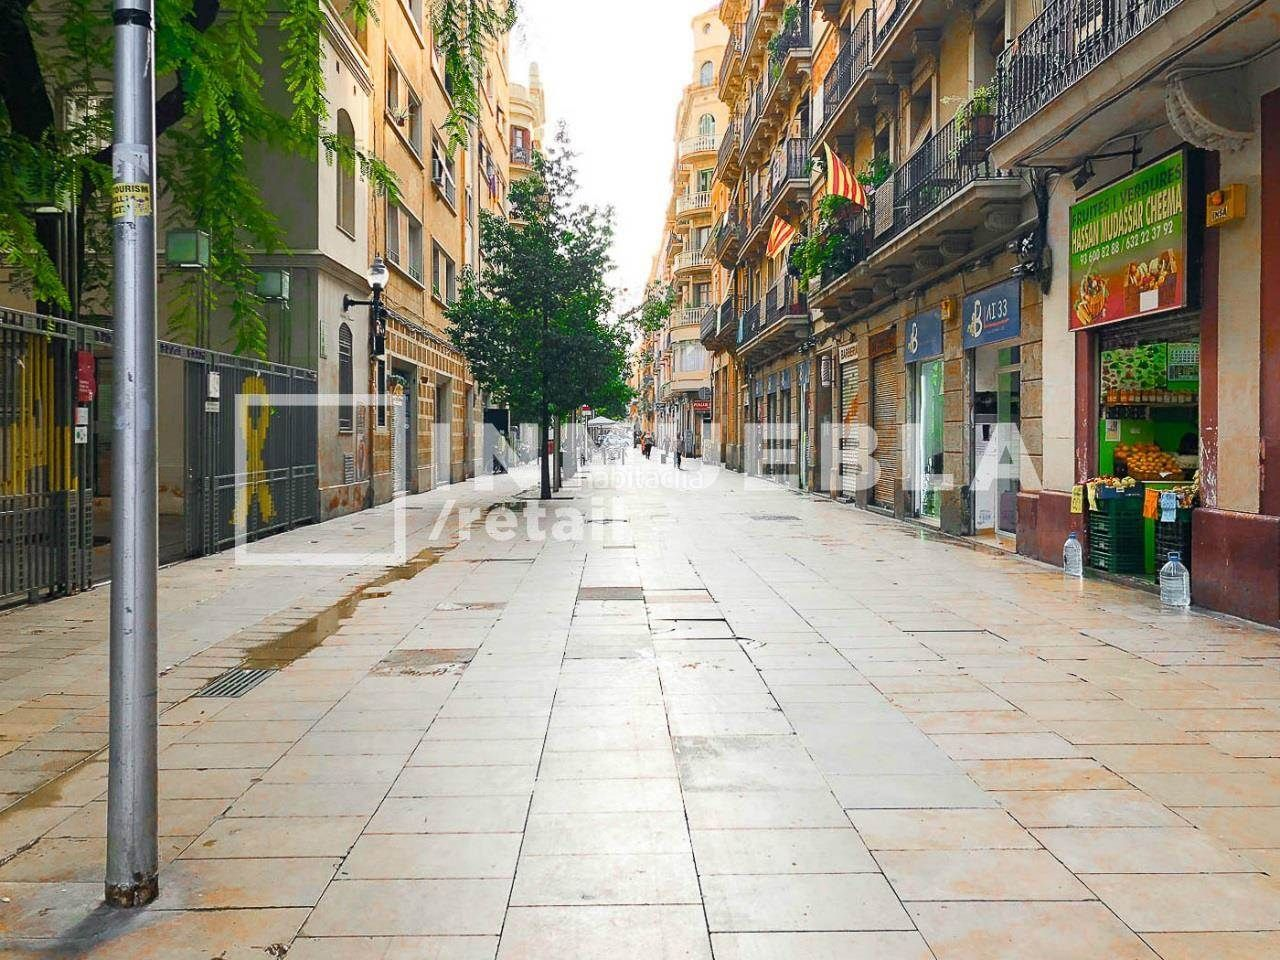 Premise with tenants in Poble Sec. Rentabilidad - excelente oportunidad - poble sec